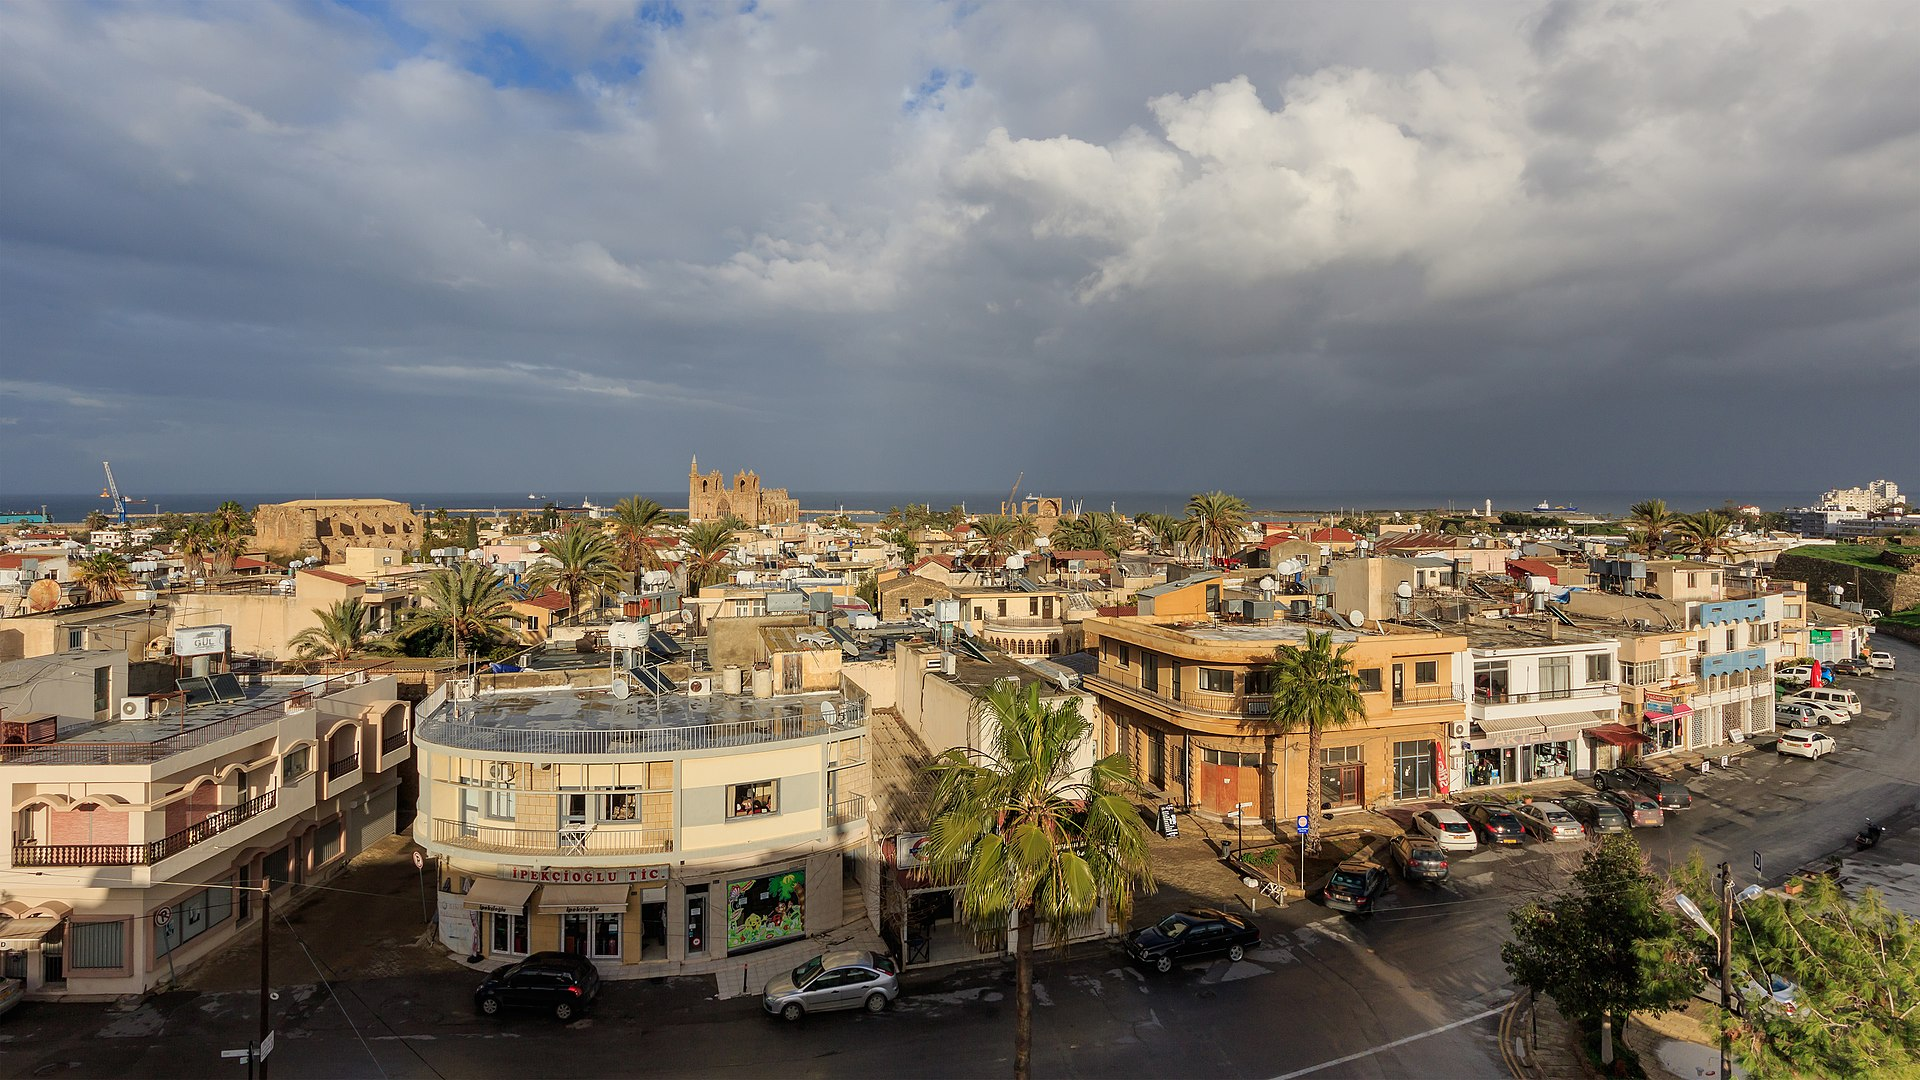 Famagusta 01-2017 img16 view of the walled city.jpg